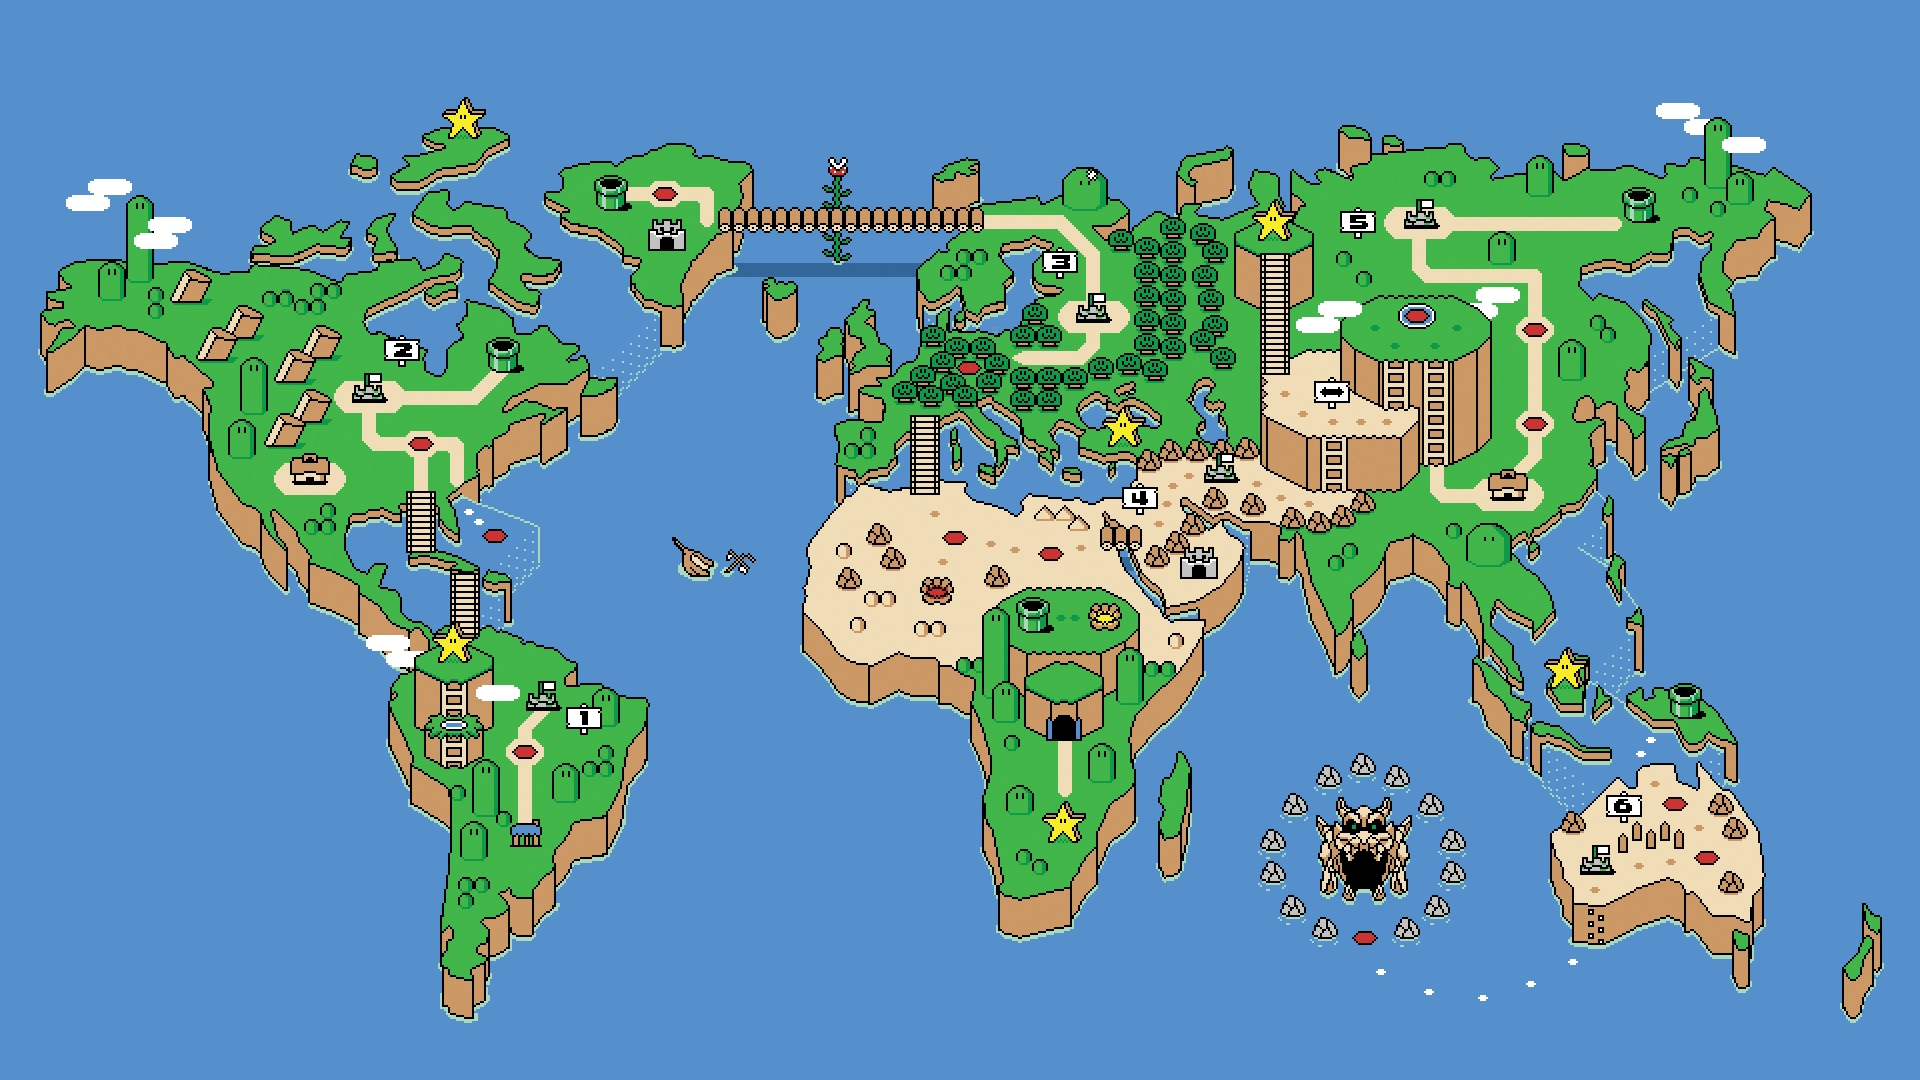 super mario world map wallpaper 4703 4950 hd wallpapersjpg 1920x1080